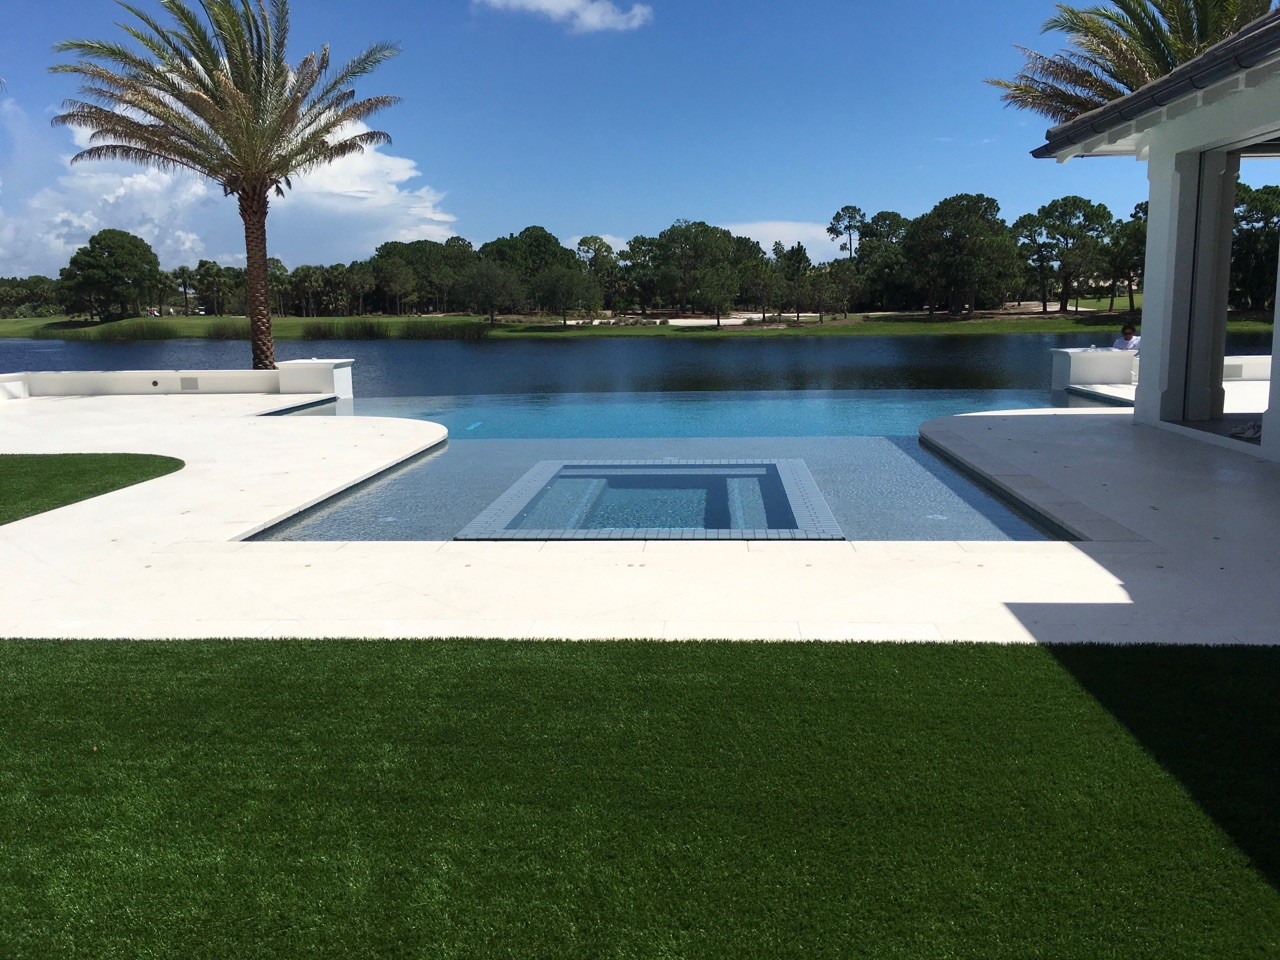 rhr pools of jupiter fl large infinity edge pool and sunken spa for this waterfront home